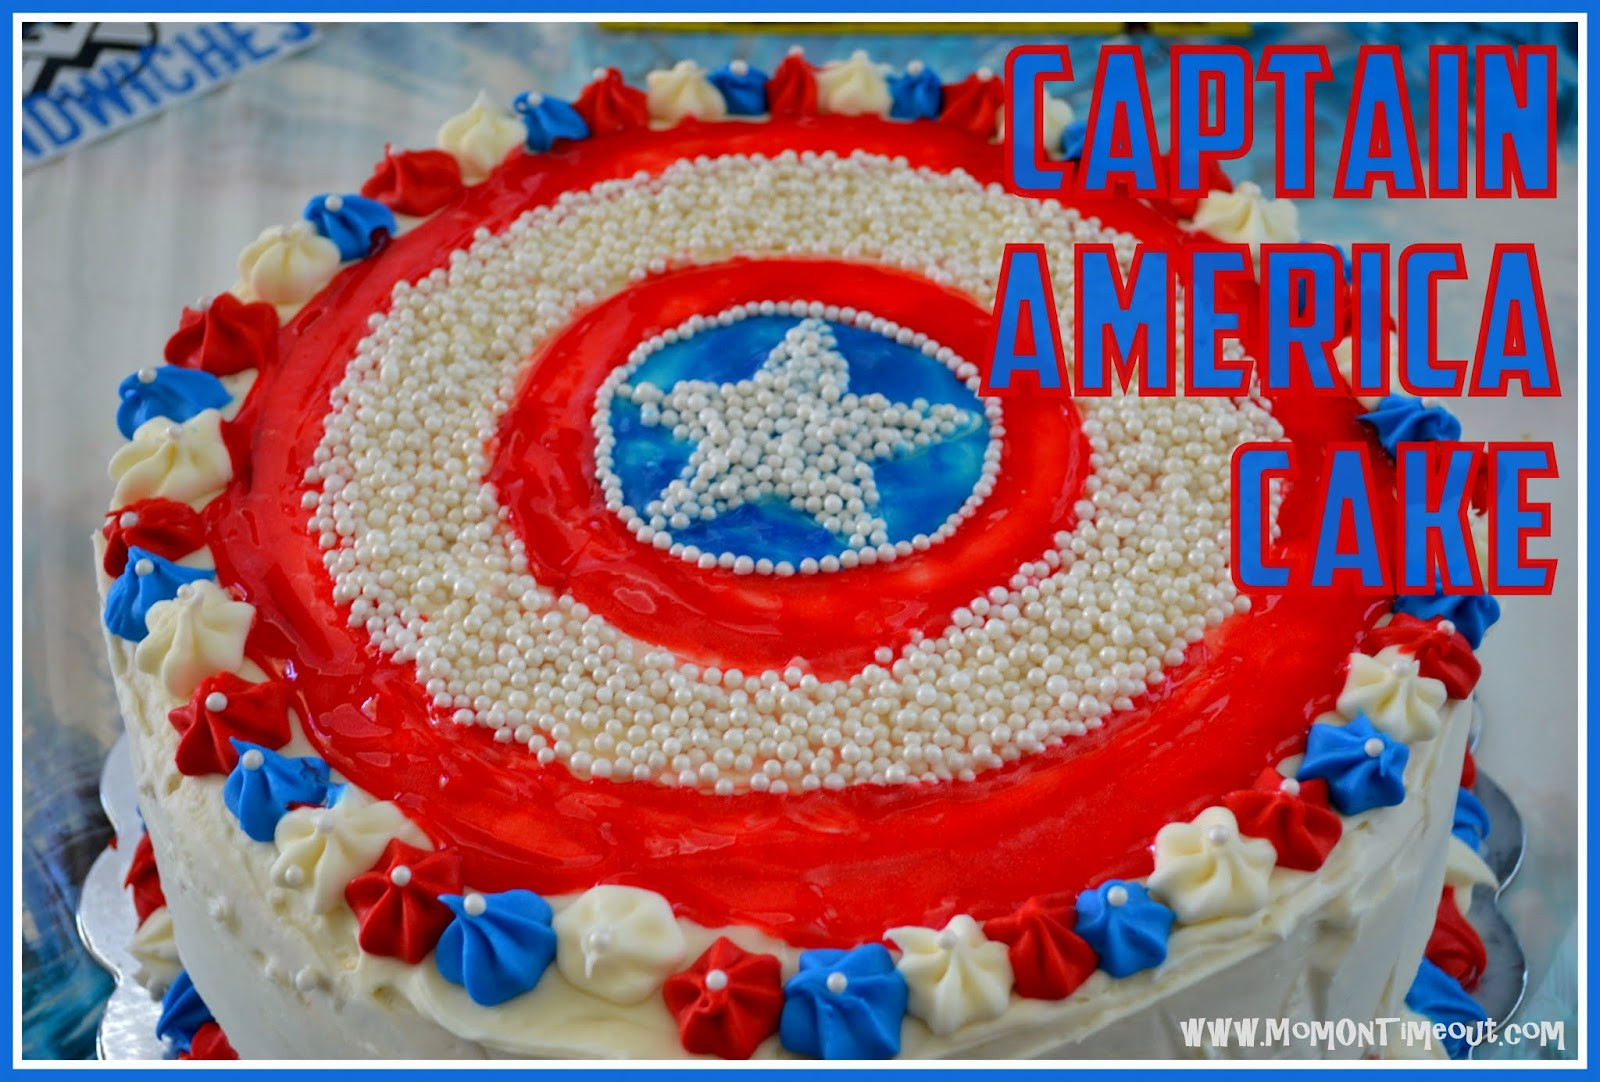 Best ideas about Captain America Birthday Cake . Save or Pin Captain America Birthday Cake Now.